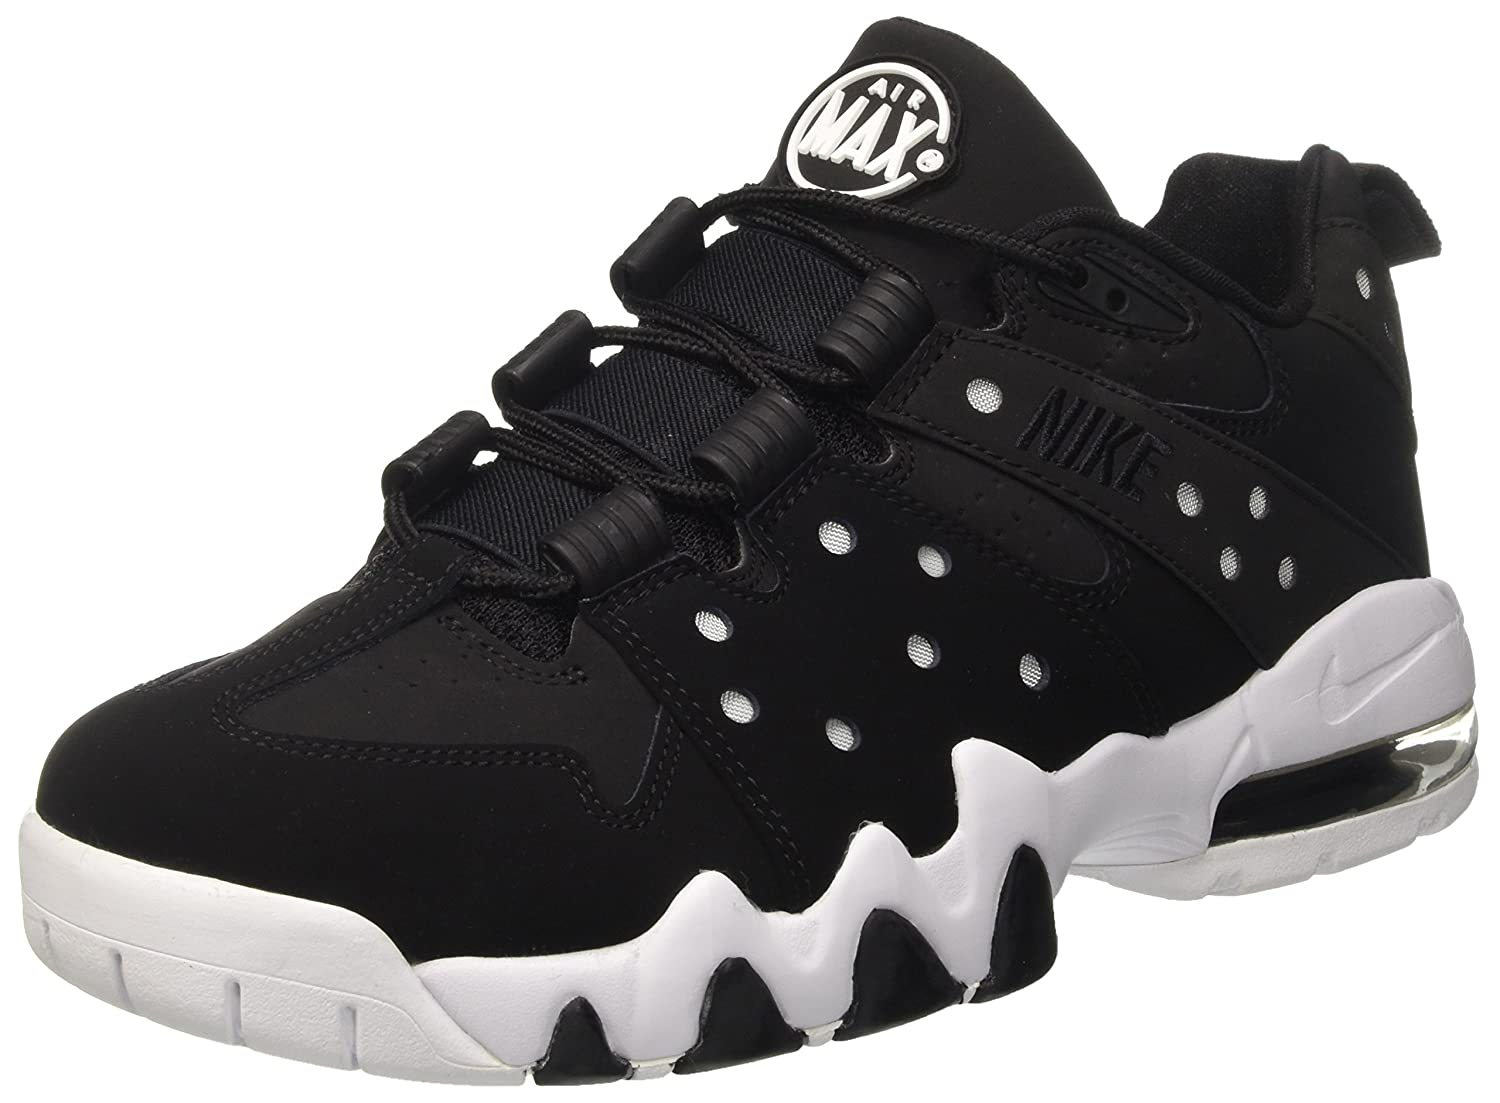 73bcf6c97fe64 Amazon.com | Nike Men's Air Max CB '94 Low Basketball Shoes Black ...